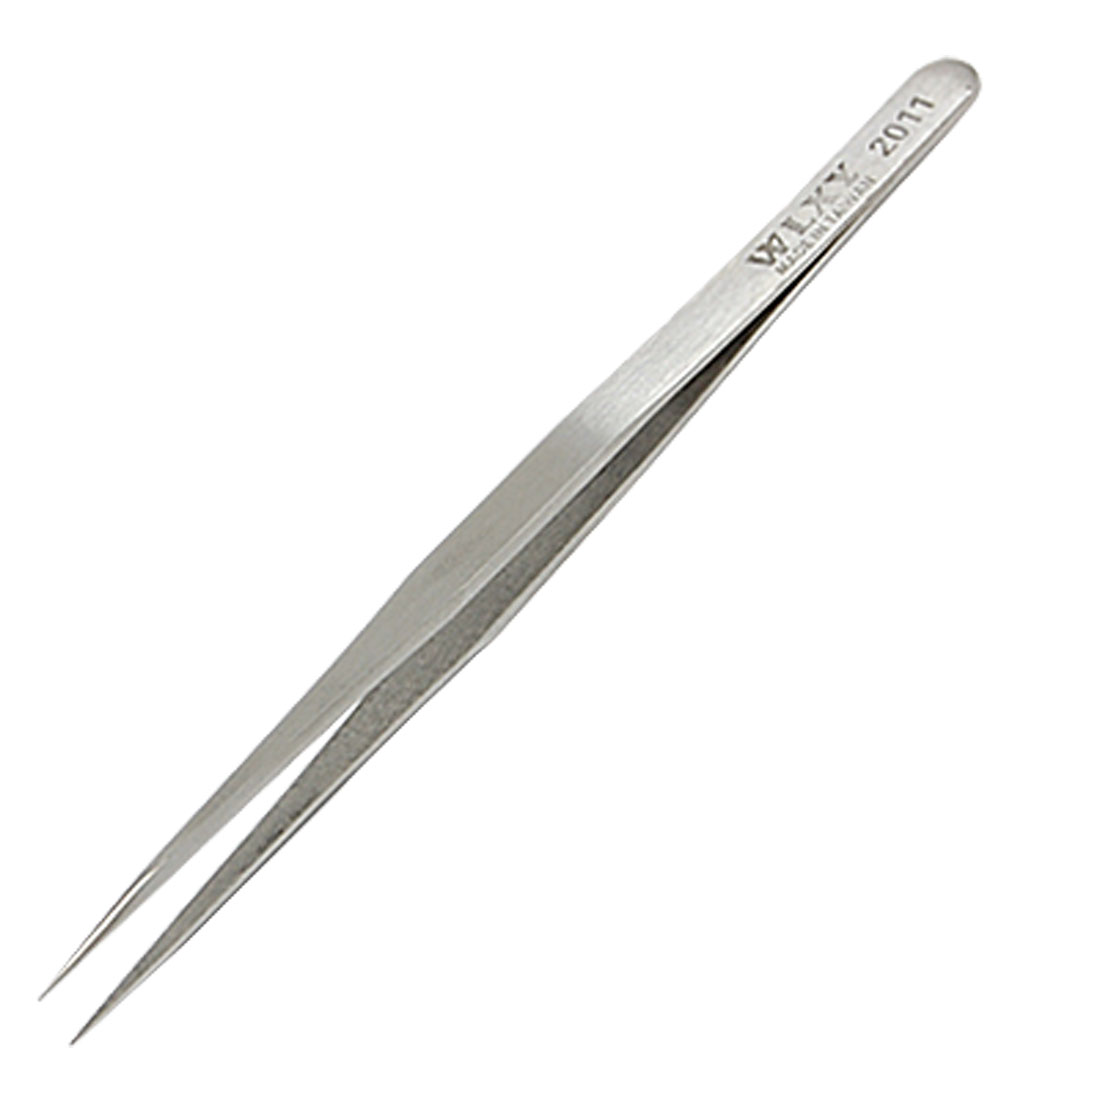 Slim Pointy Straight Extra Fine Point Tweezers Plier